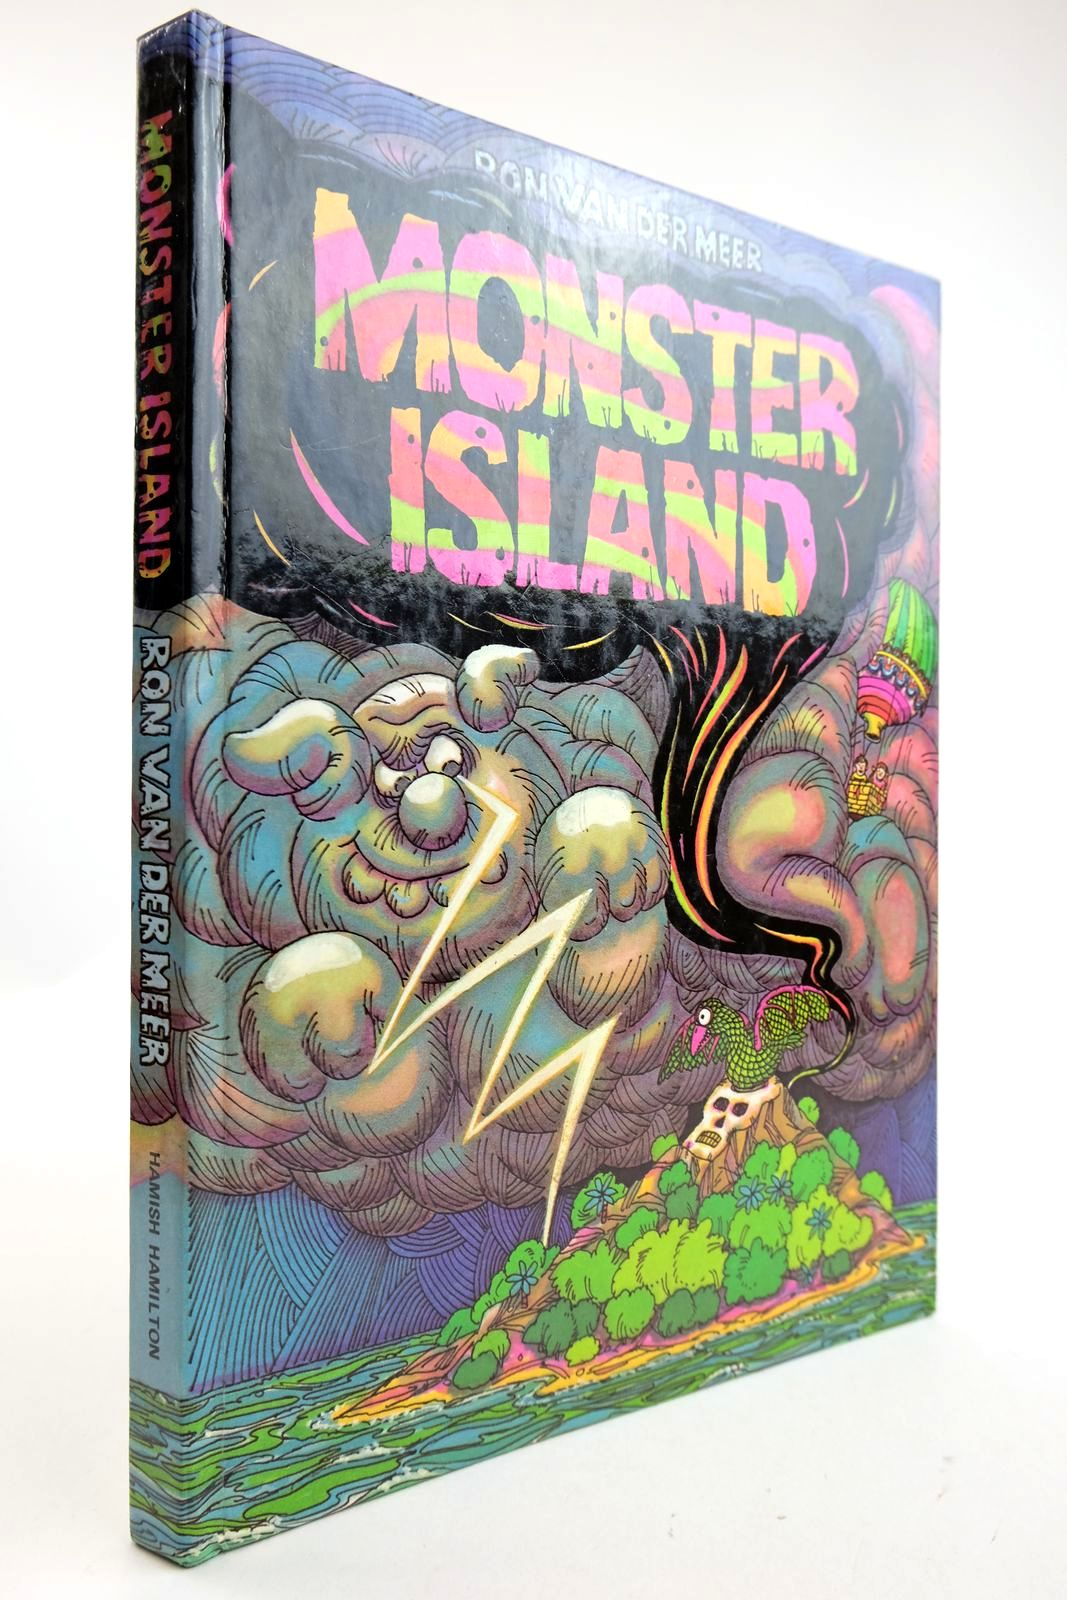 Photo of MONSTER ISLAND illustrated by Van Der Meer, Ron Van Der Meer, Atie published by Hamish Hamilton Childrens Books (STOCK CODE: 2132960)  for sale by Stella & Rose's Books